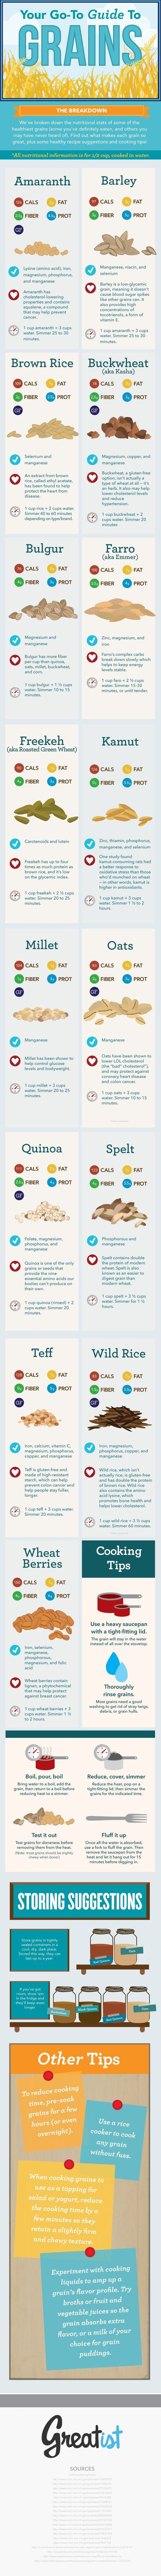 Your Go-To Gide for Choosing Healthier Grains #healthy #grains #tips